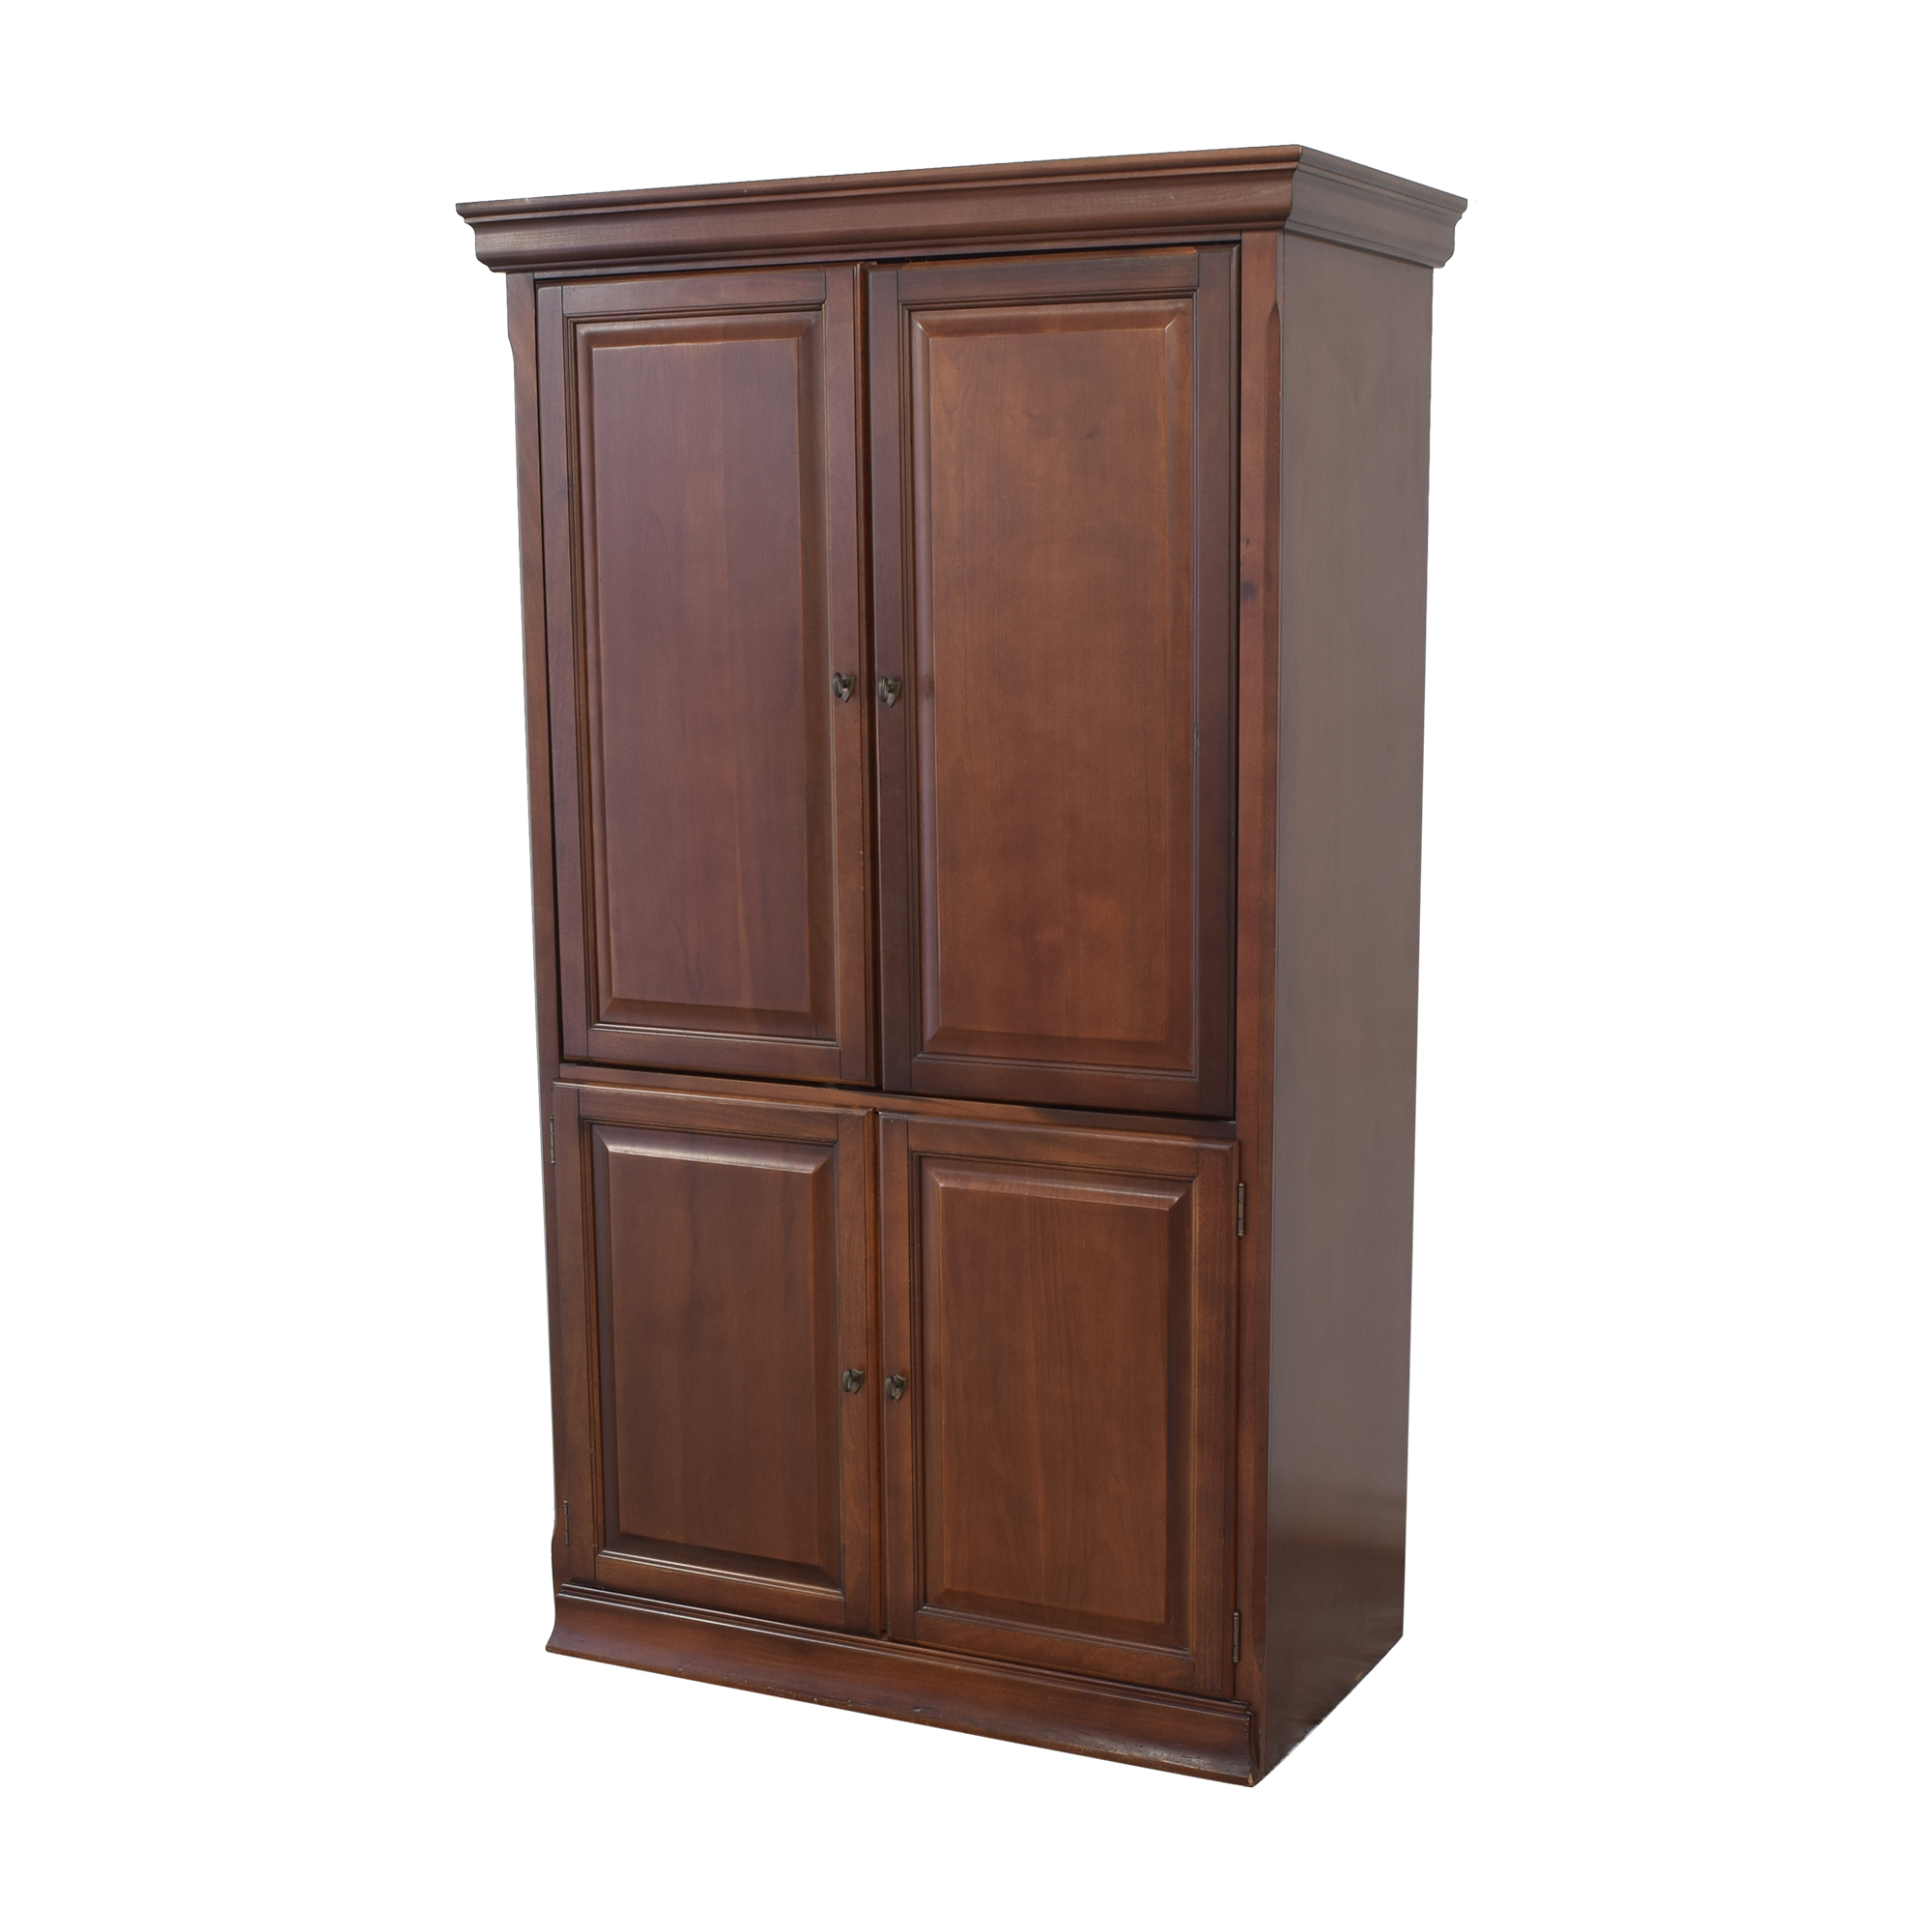 Kimball Brittany Media Armoire / Wardrobes & Armoires